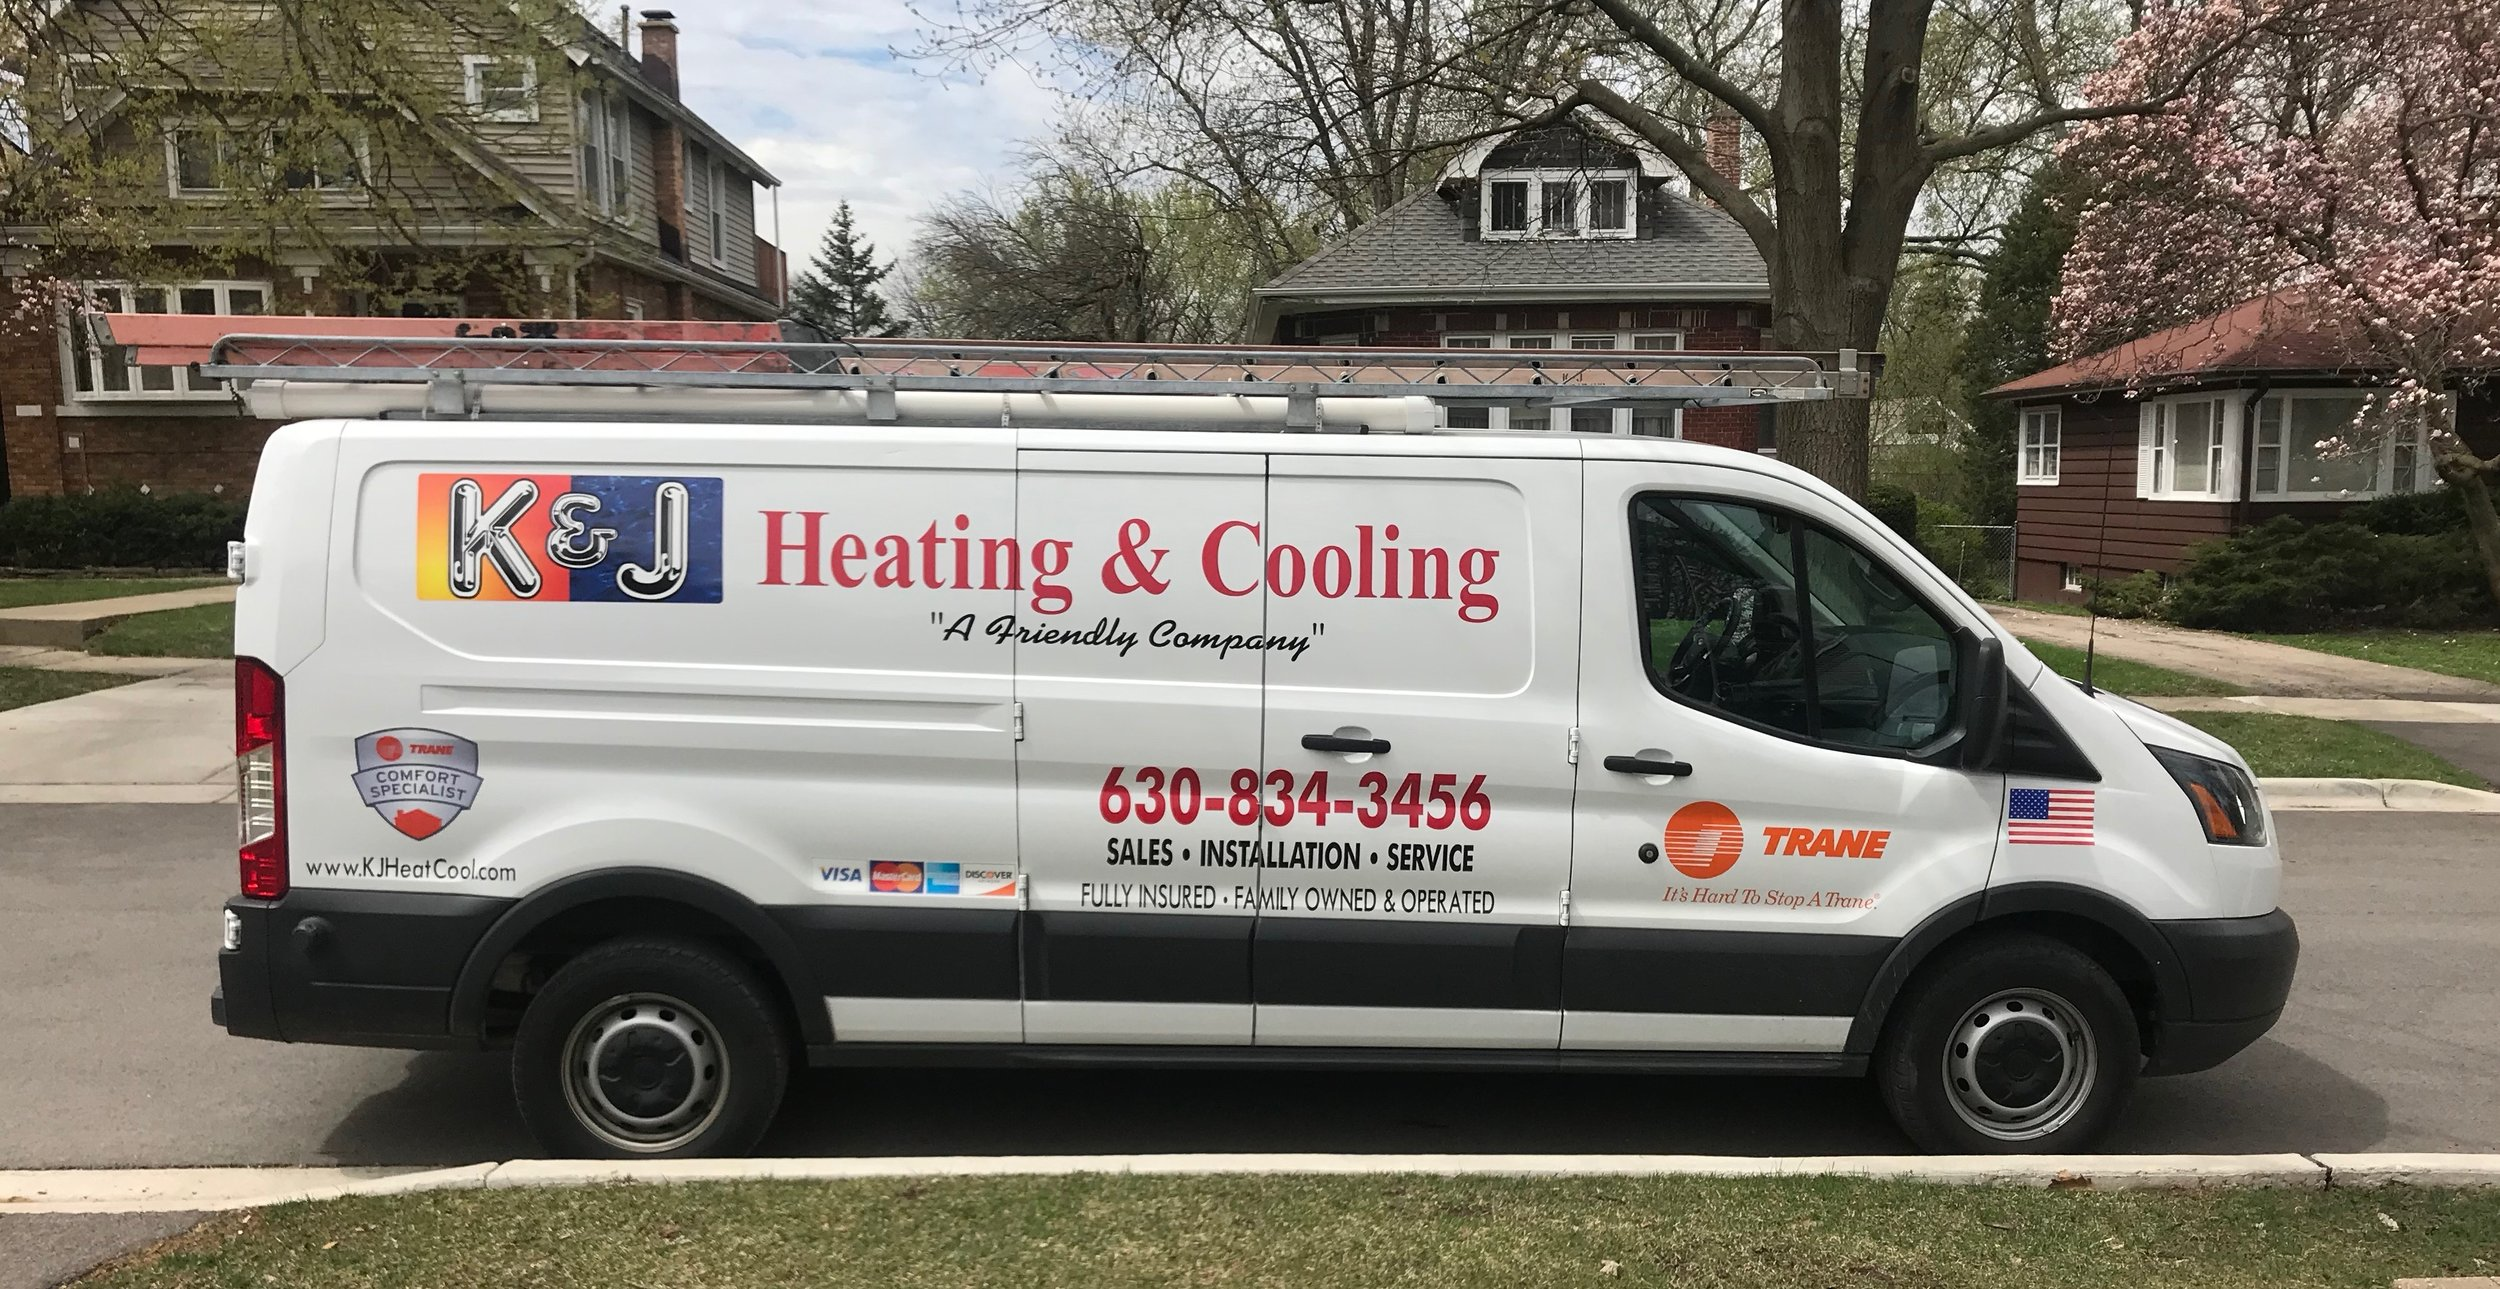 K & J Heating and Cooling Call 630-834-3456 for New Air Conditioning and Furnace Service In Villa Park and surrounding suburbs.